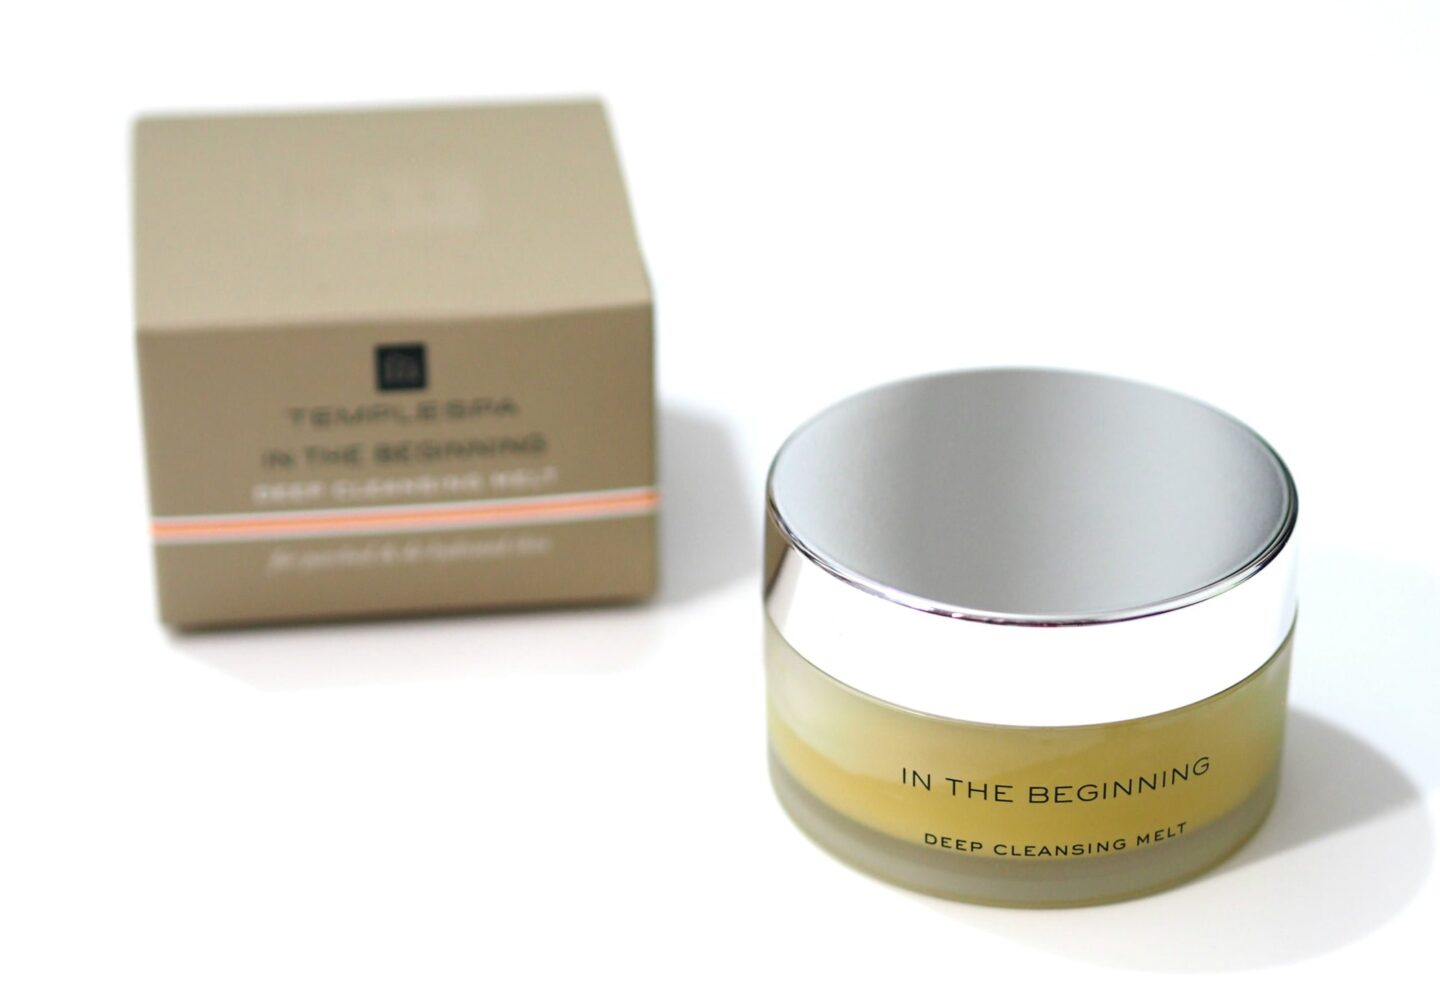 Temple Spa In The Beginning Deep Cleansing Melt & Exfoliating Balm